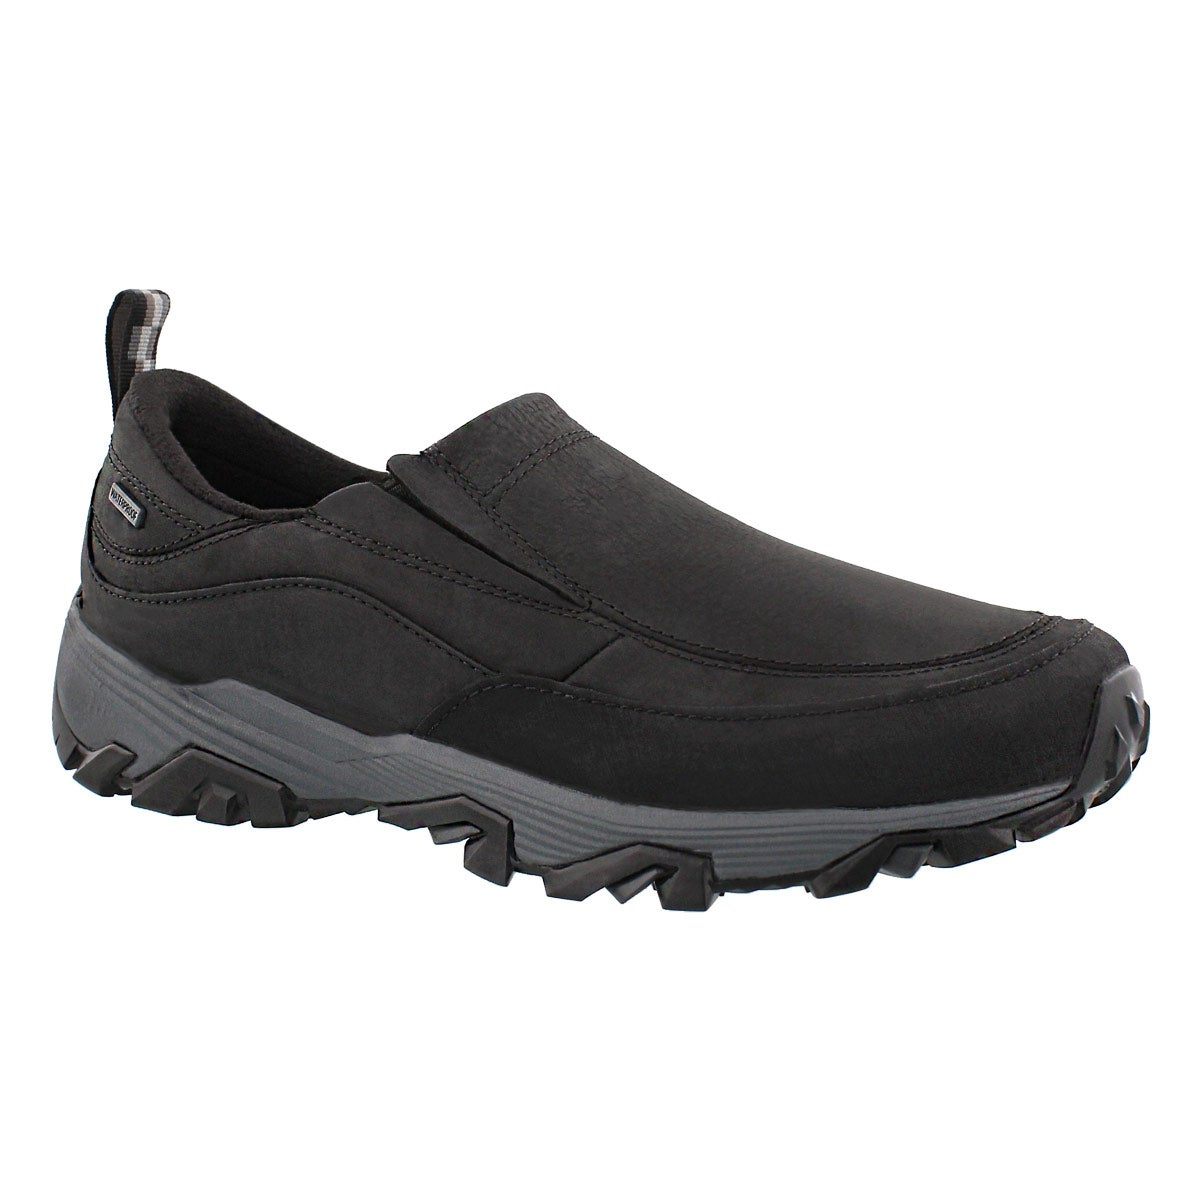 Mns Coldpack Ice blk WTPF Shiver Moc